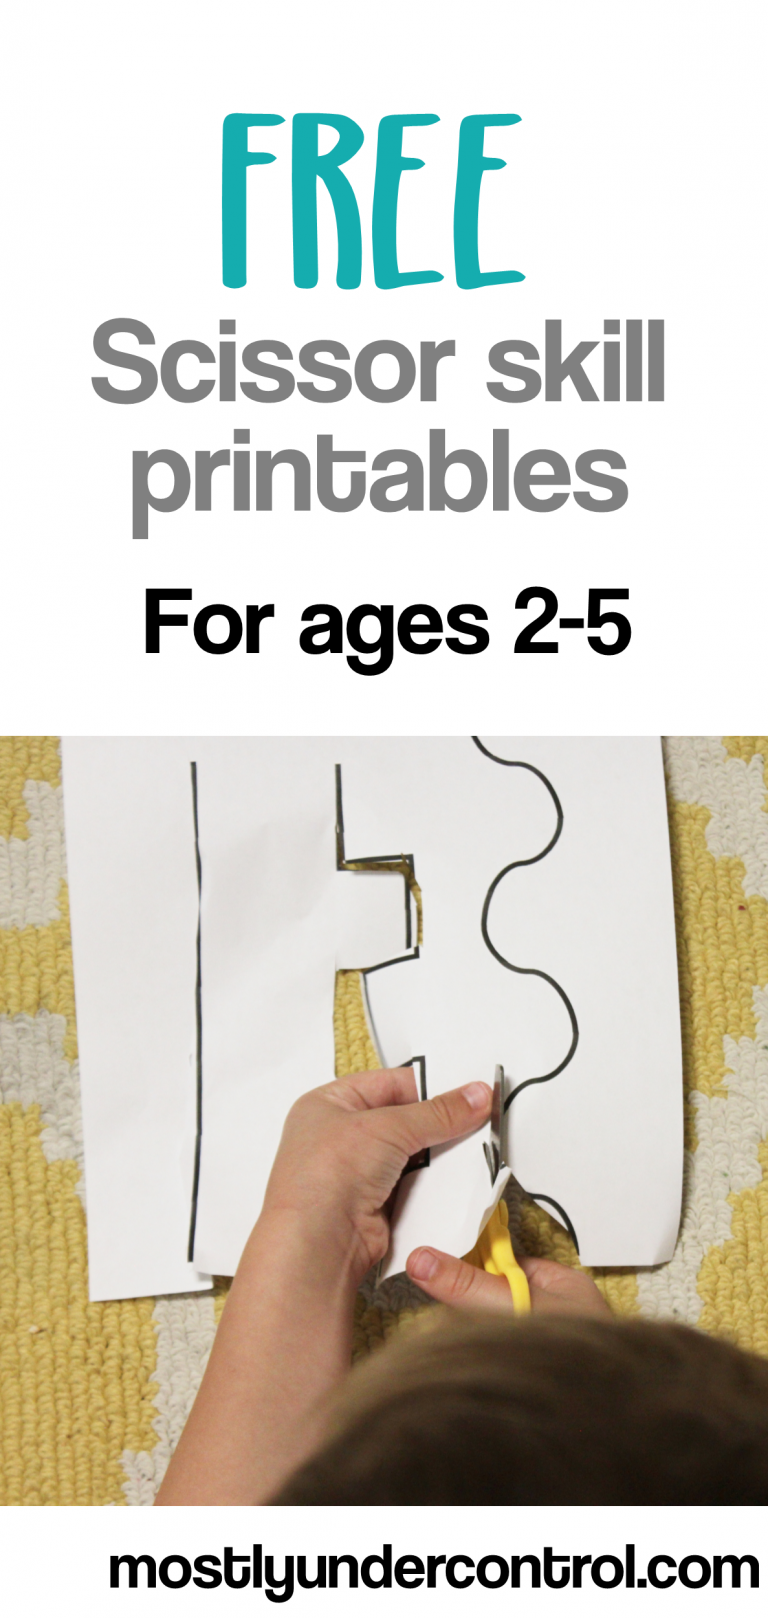 Free scissor skill printable! Did you know how many things you're working on when you're working on scissor skills at home? It helps kids strengthen their fine motor skills, hand eye coordination - so much more! Check out this post for a free scissor skill printable for kids ages 2-5.